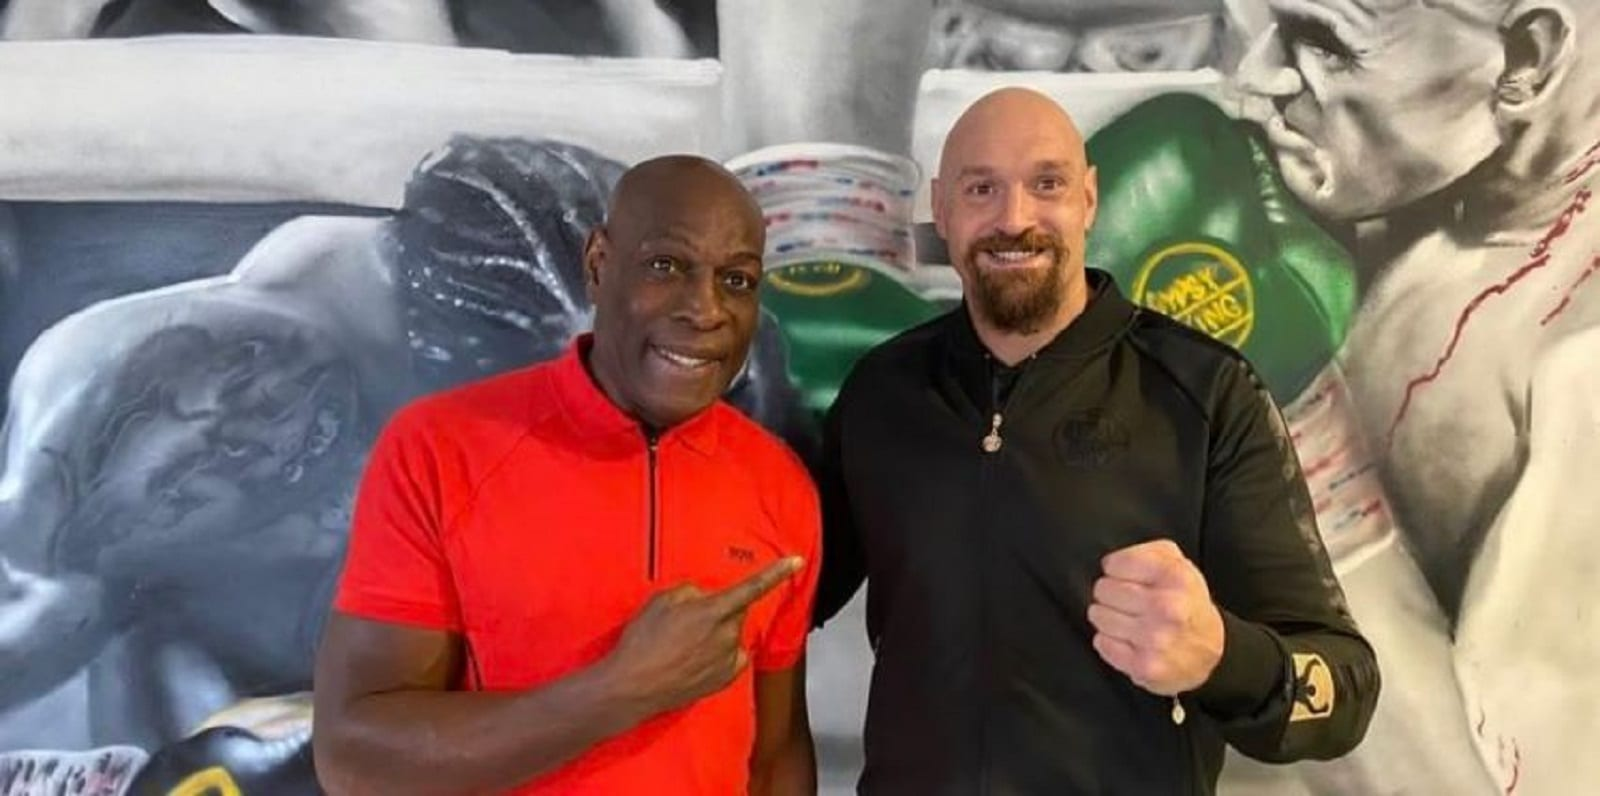 Tyson Fury Runs Into A Living Legend In Boxing